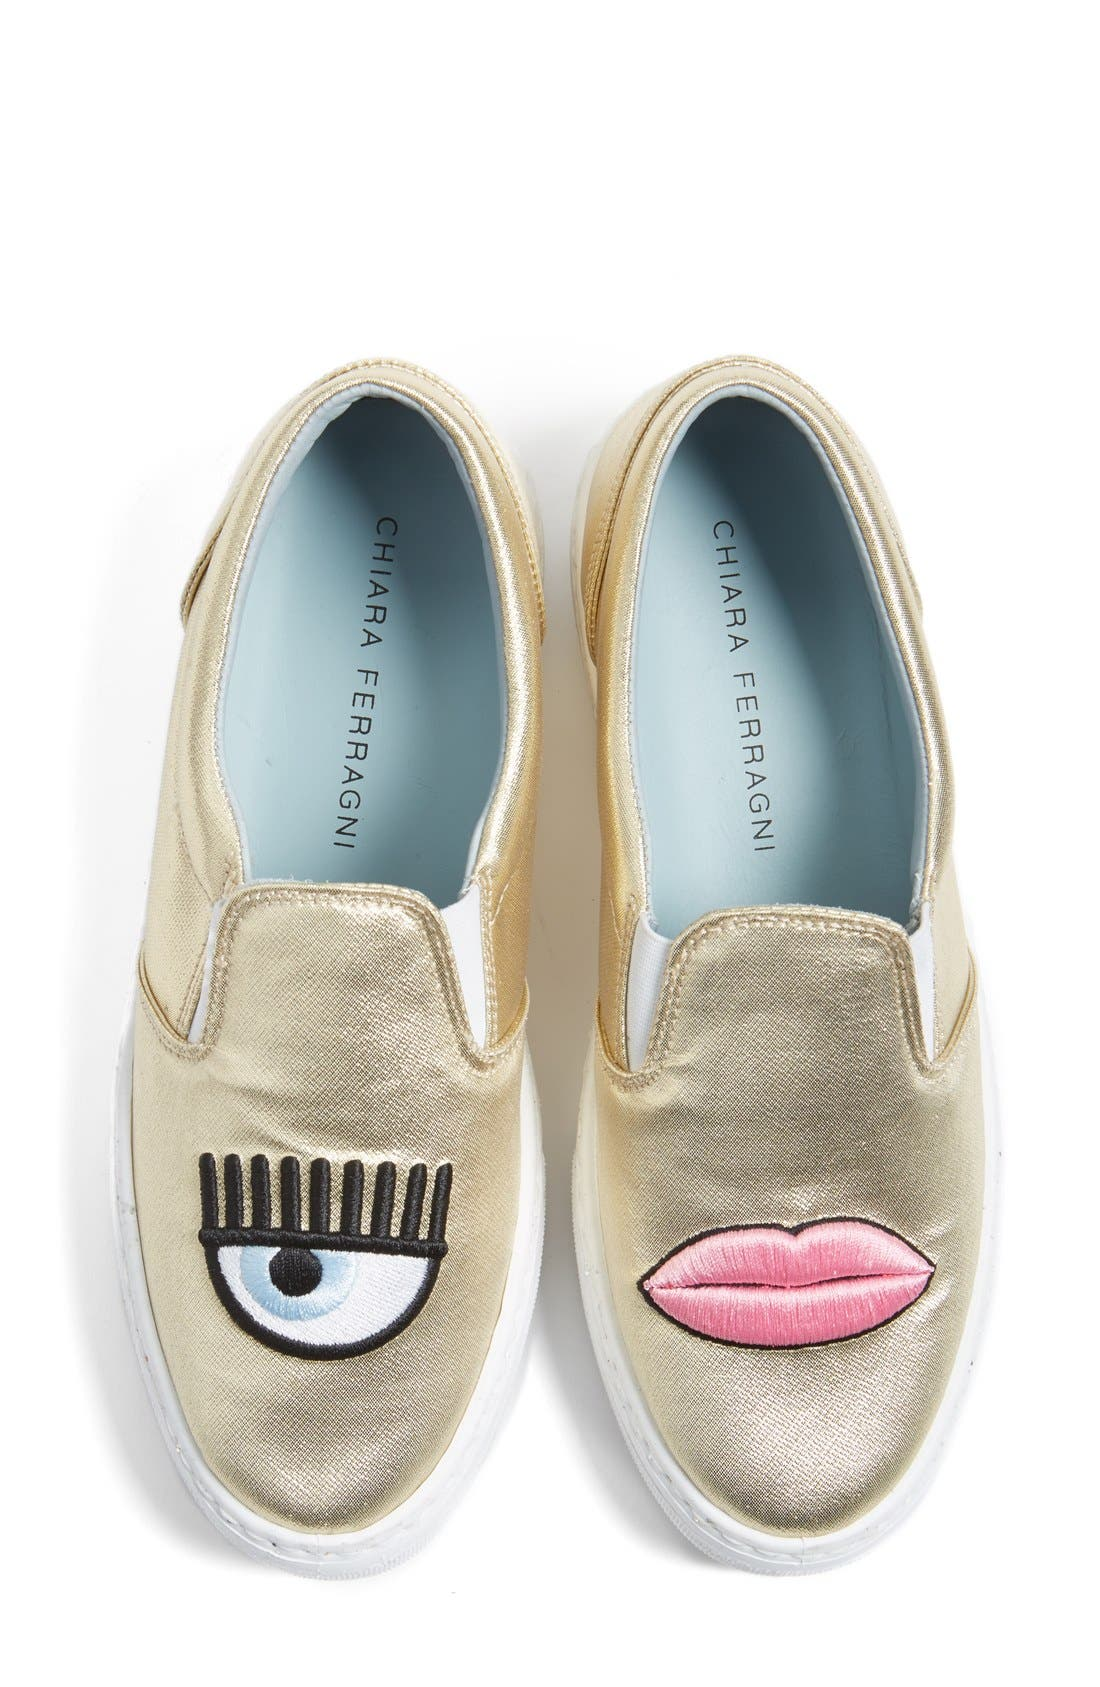 Alternate Image 1 Selected - Chiara Ferragni Flirting Lips Slip-On Sneaker (Women)